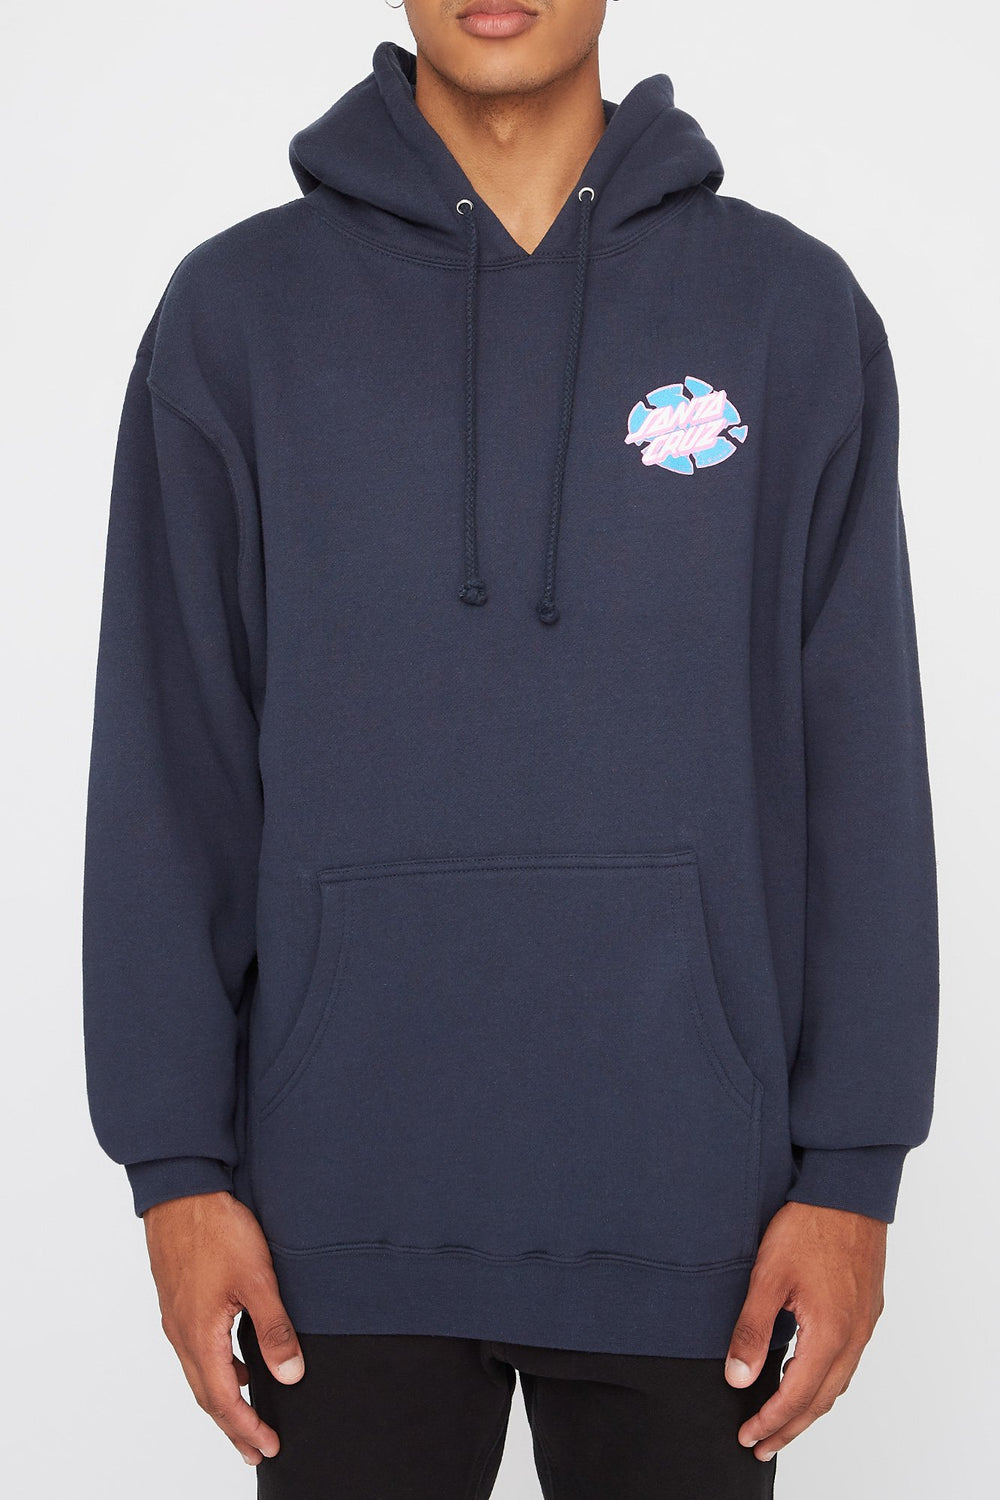 Santa Cruz Mens Broken Dot Navy Hoodie Navy